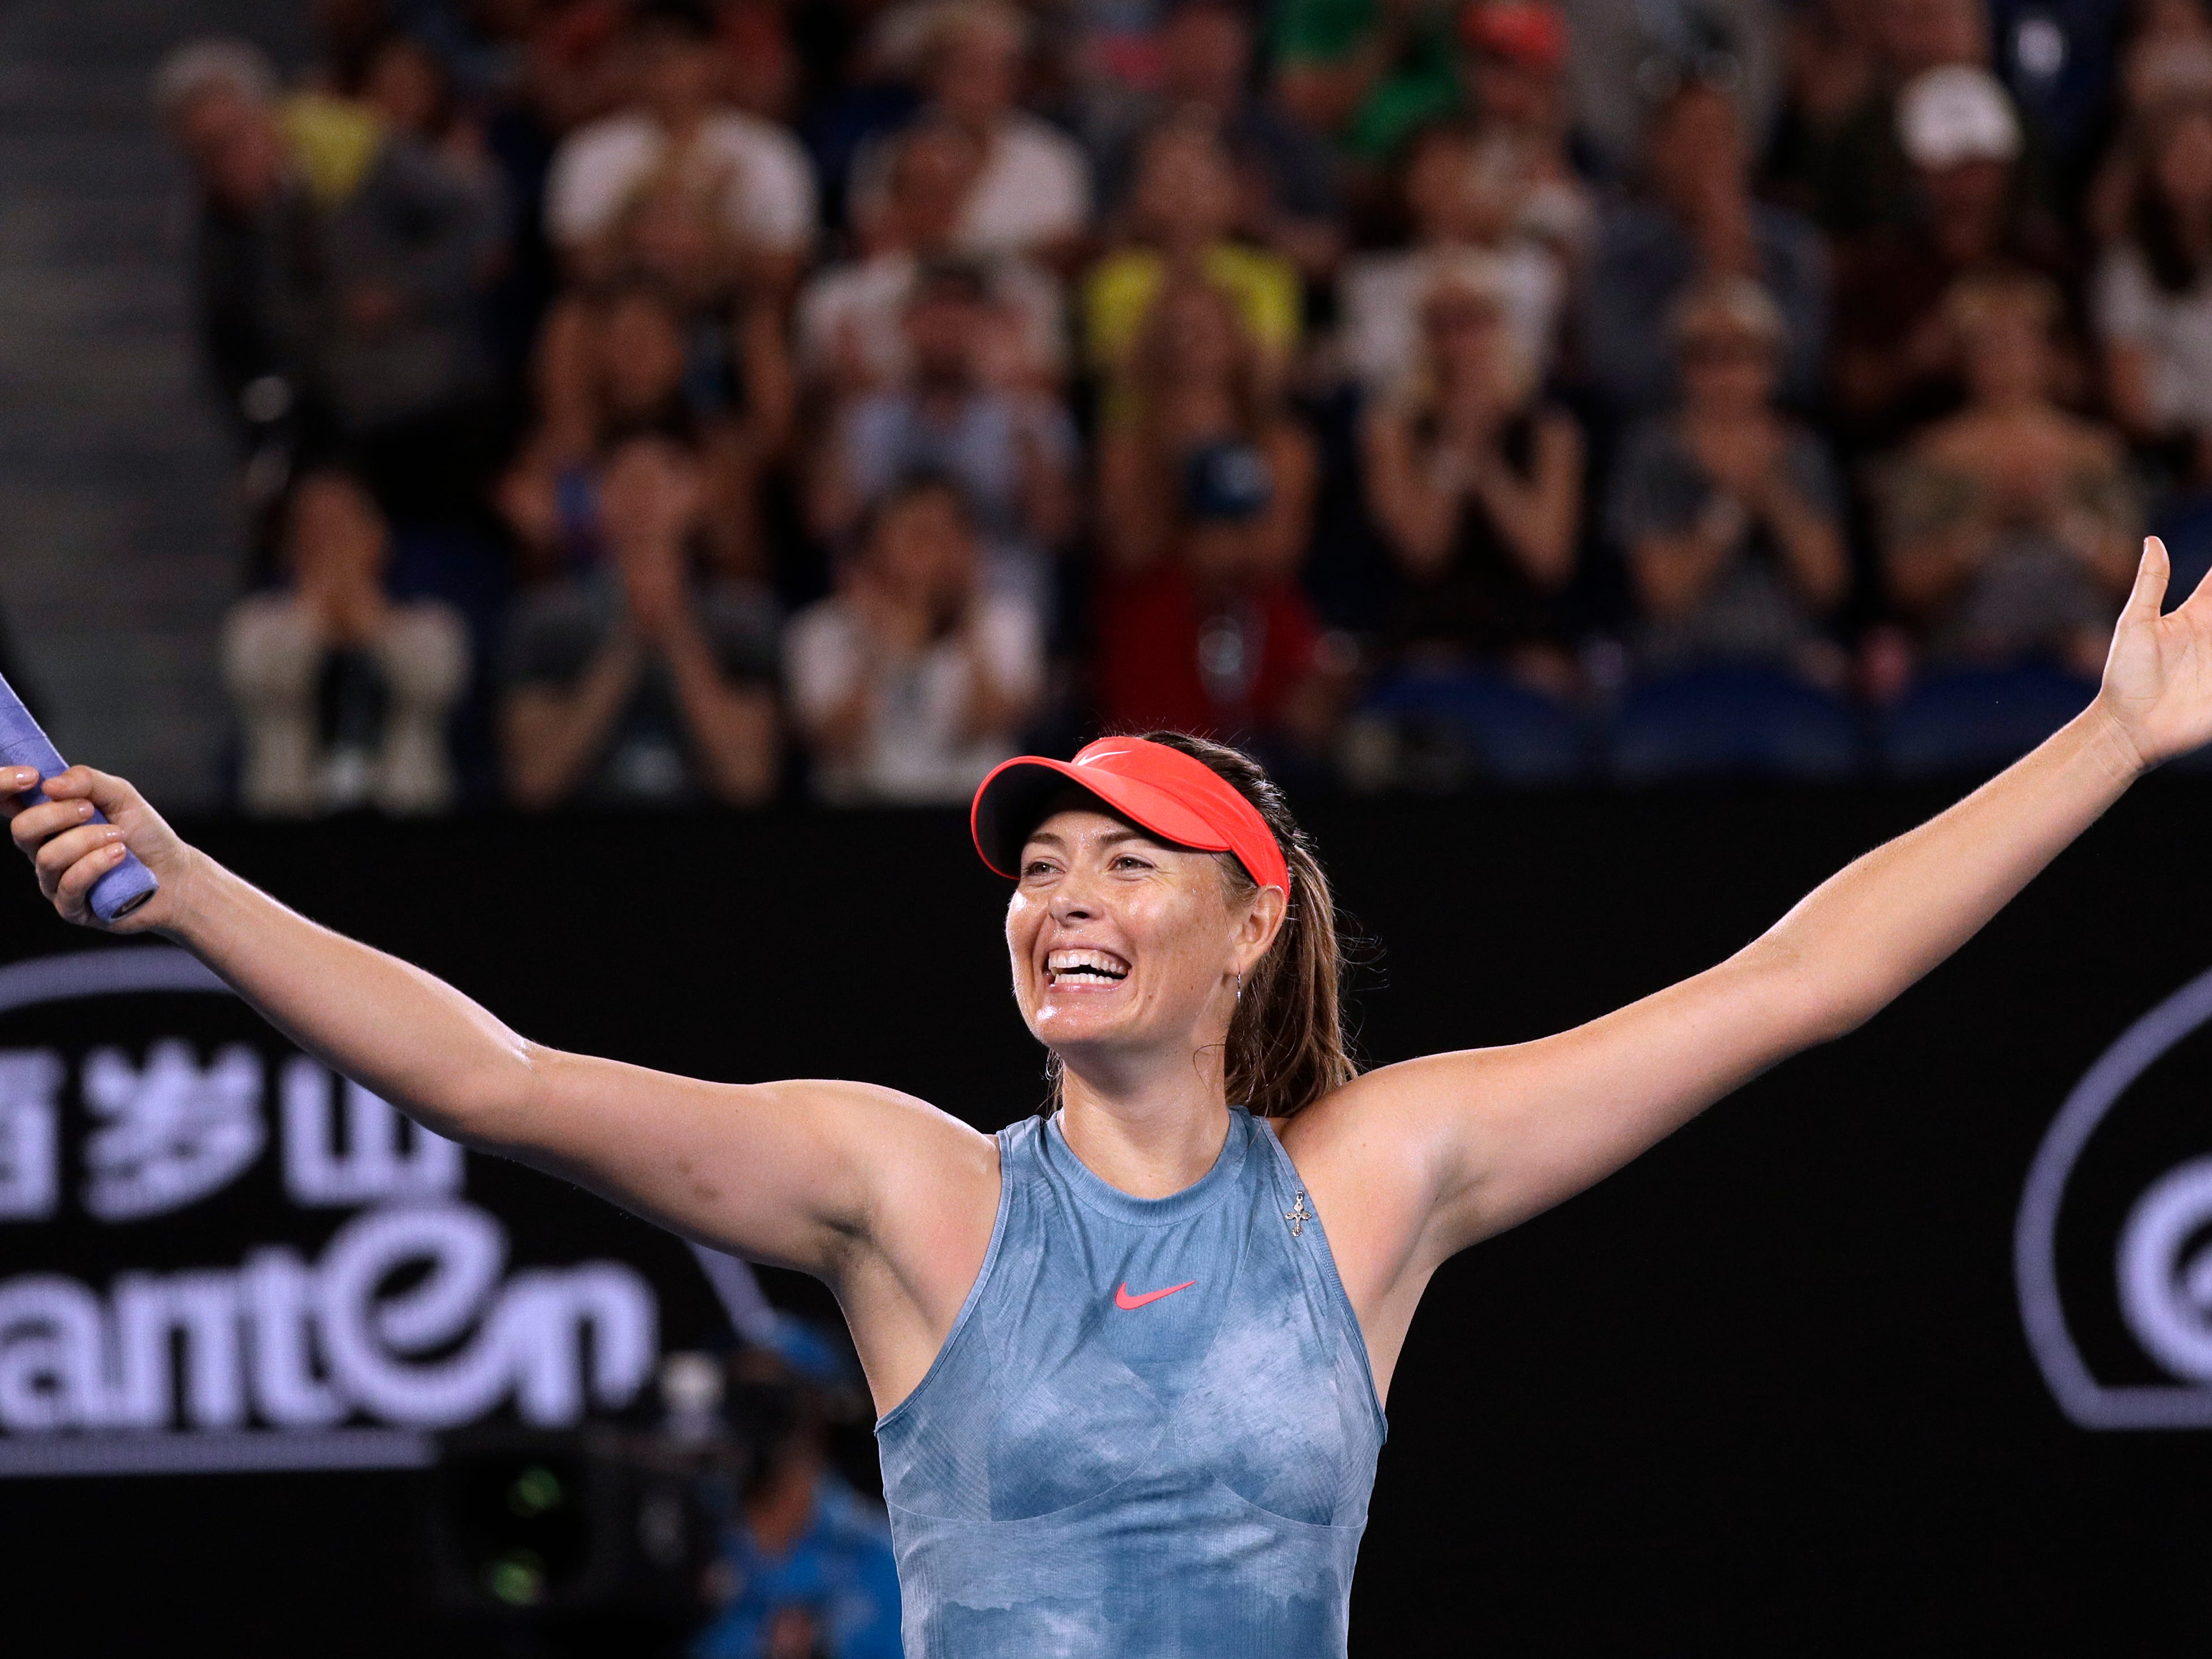 Maria Sharapova celebrates after defeating defending Australian Open champion Caroline Wozniacki in their third round match.